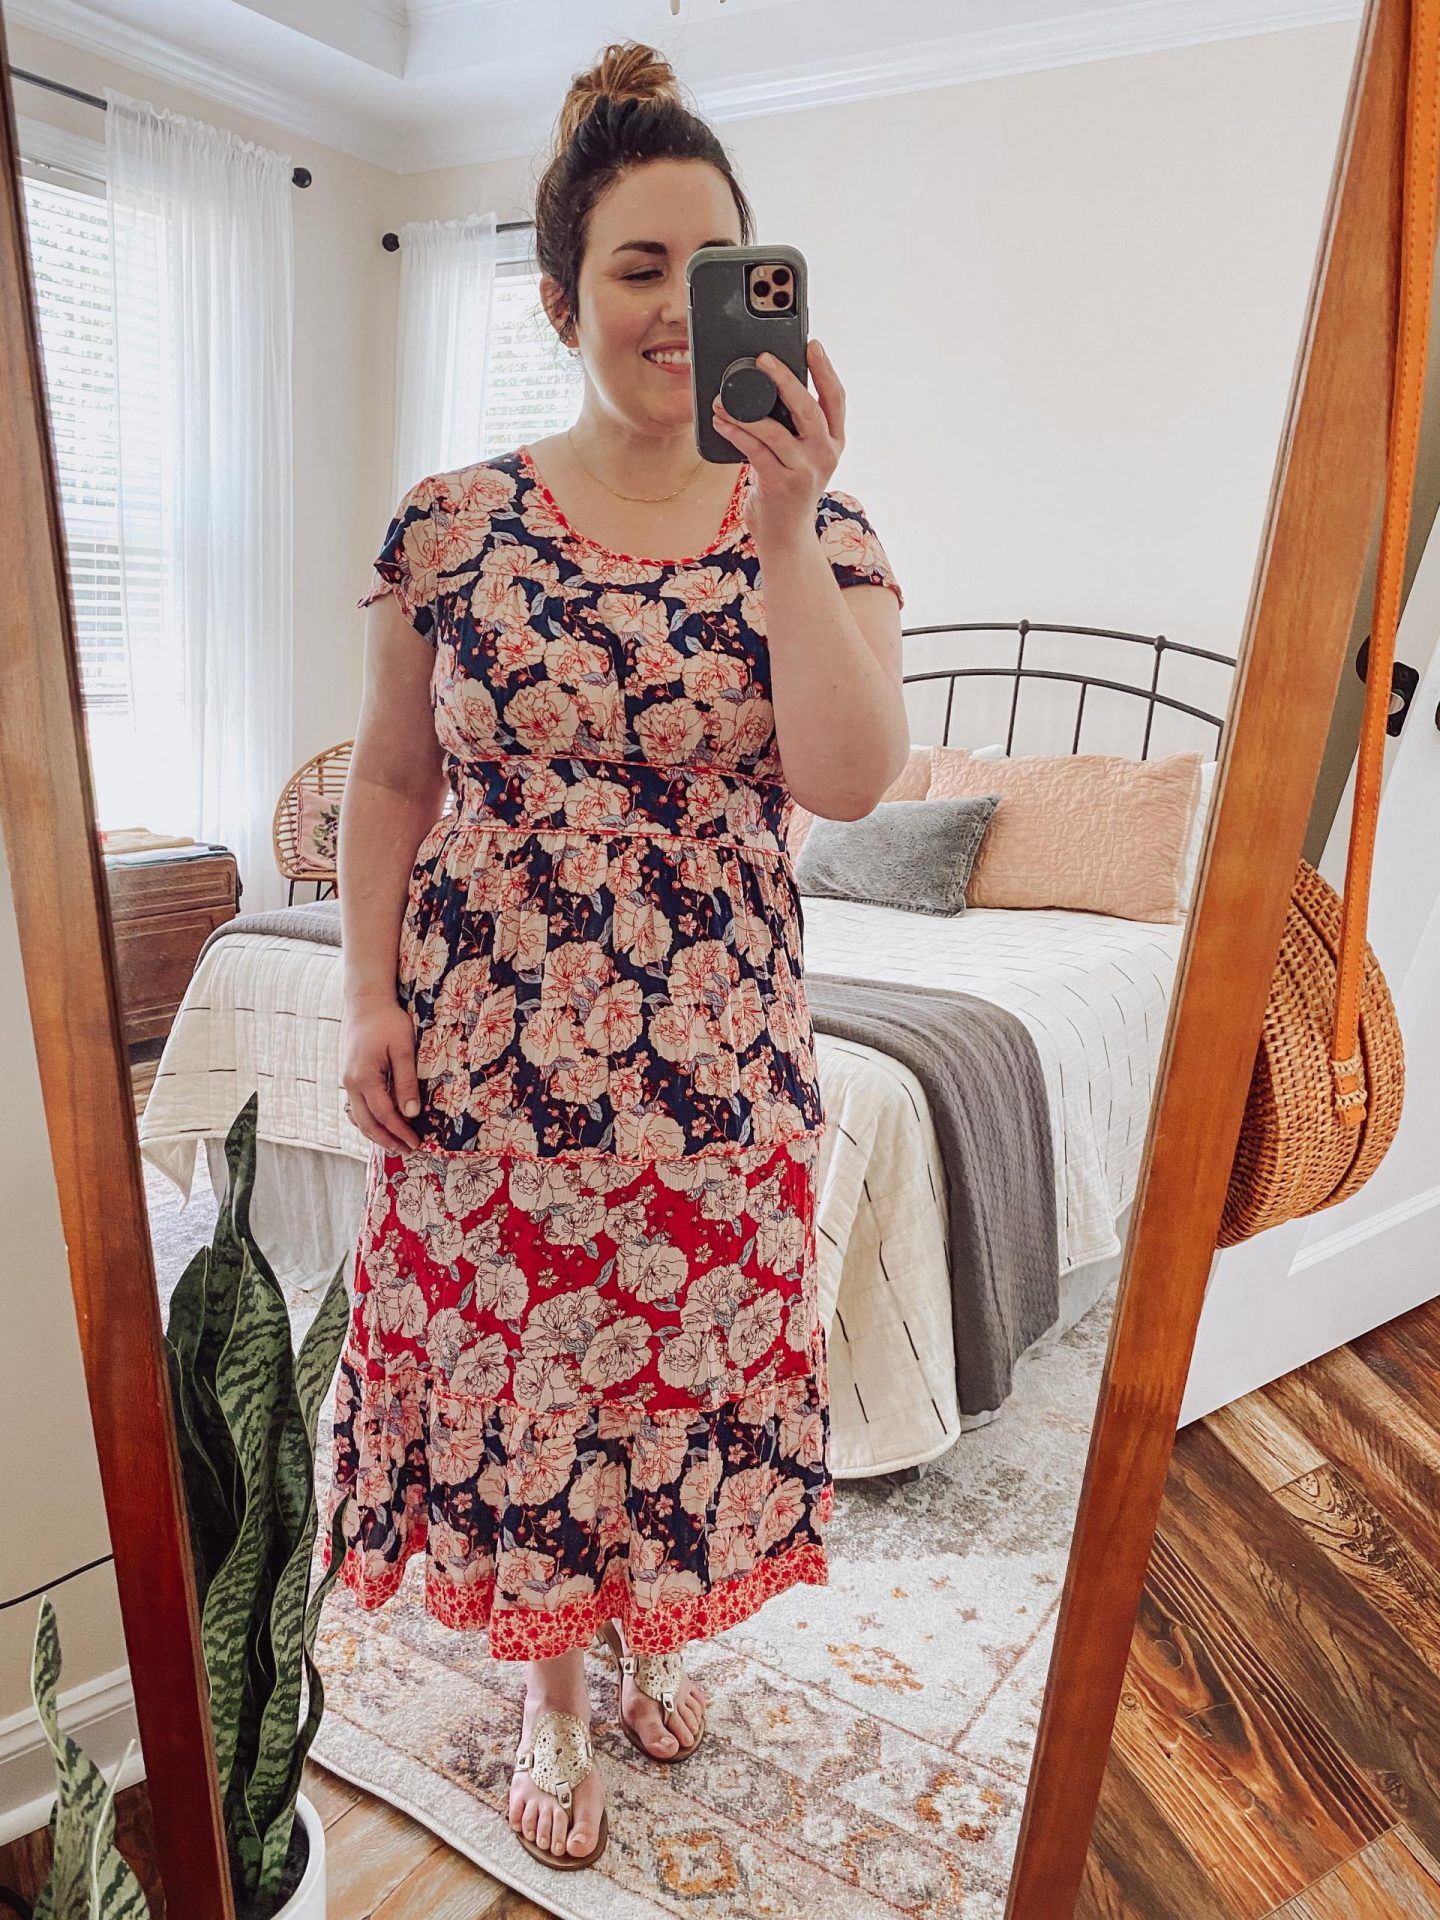 NC blogger Rebecca Lately is sharing her Fourth of July outfits inspiration, just in time to plan for the long holiday weekend!